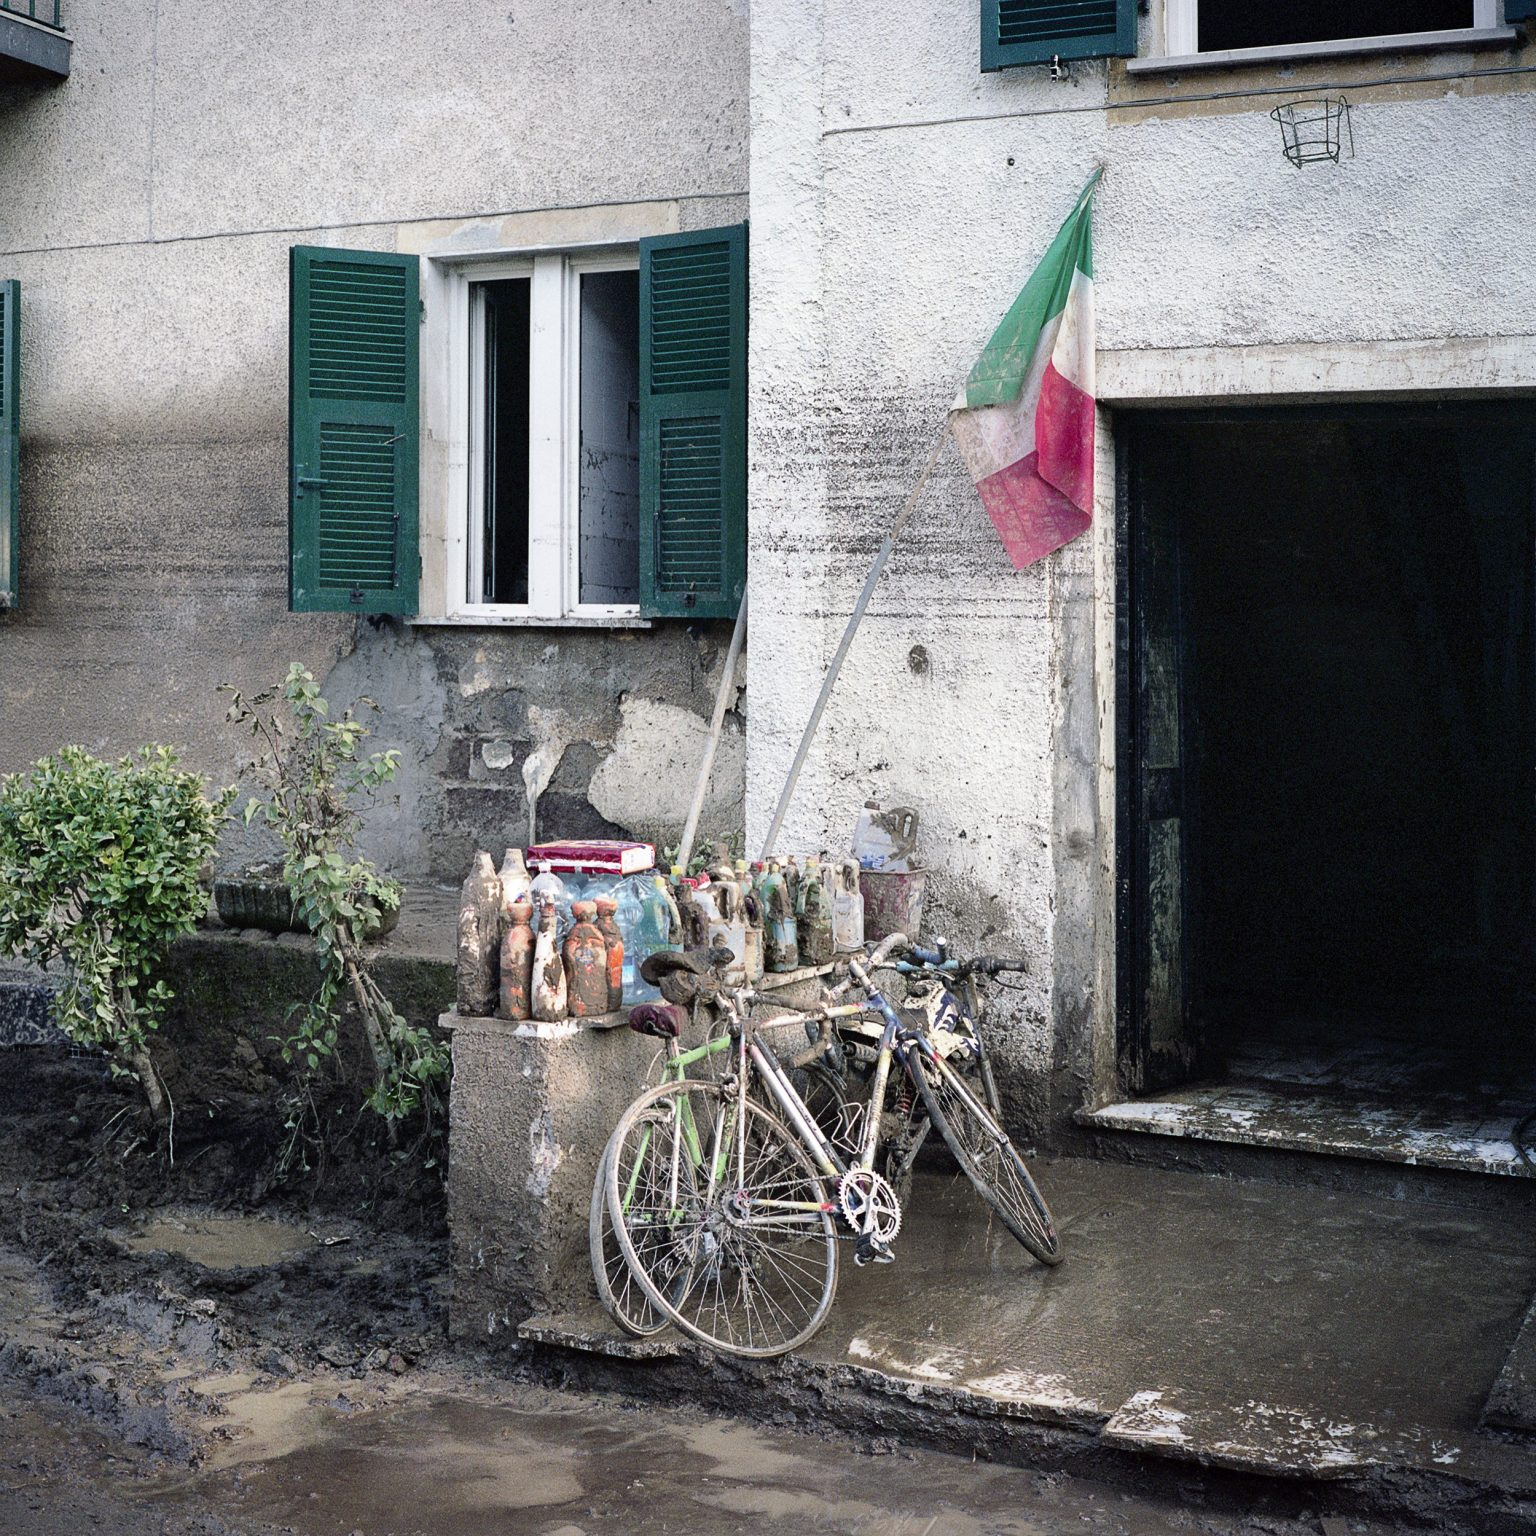 Borghetto di Vara, November 2011. After the intense rain the town was hit by a severe flood that caused 7 deaths and much damage to the buildings and economic activities. The entrance of a house damaged by the flood.